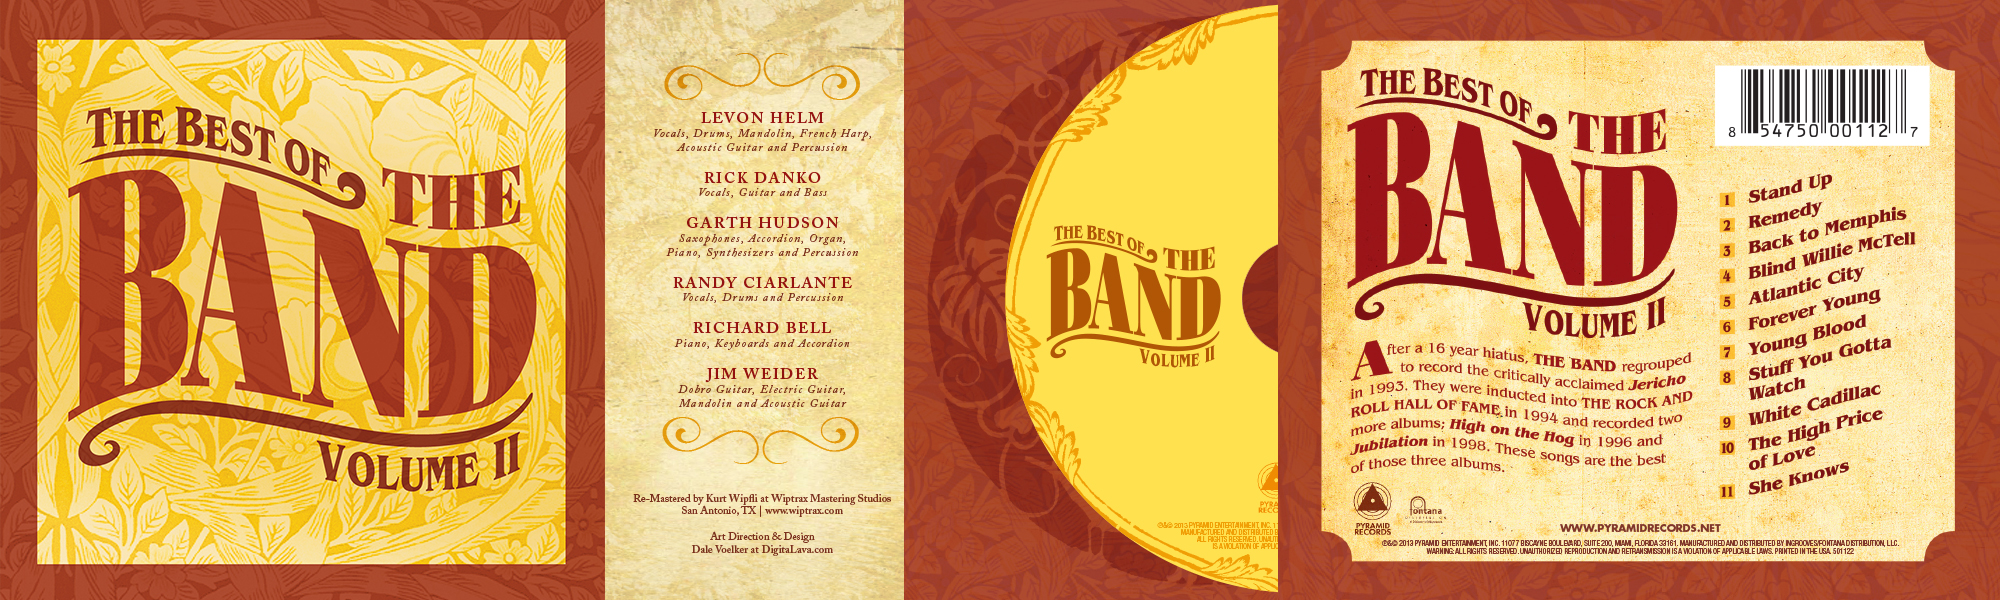 the-band-image